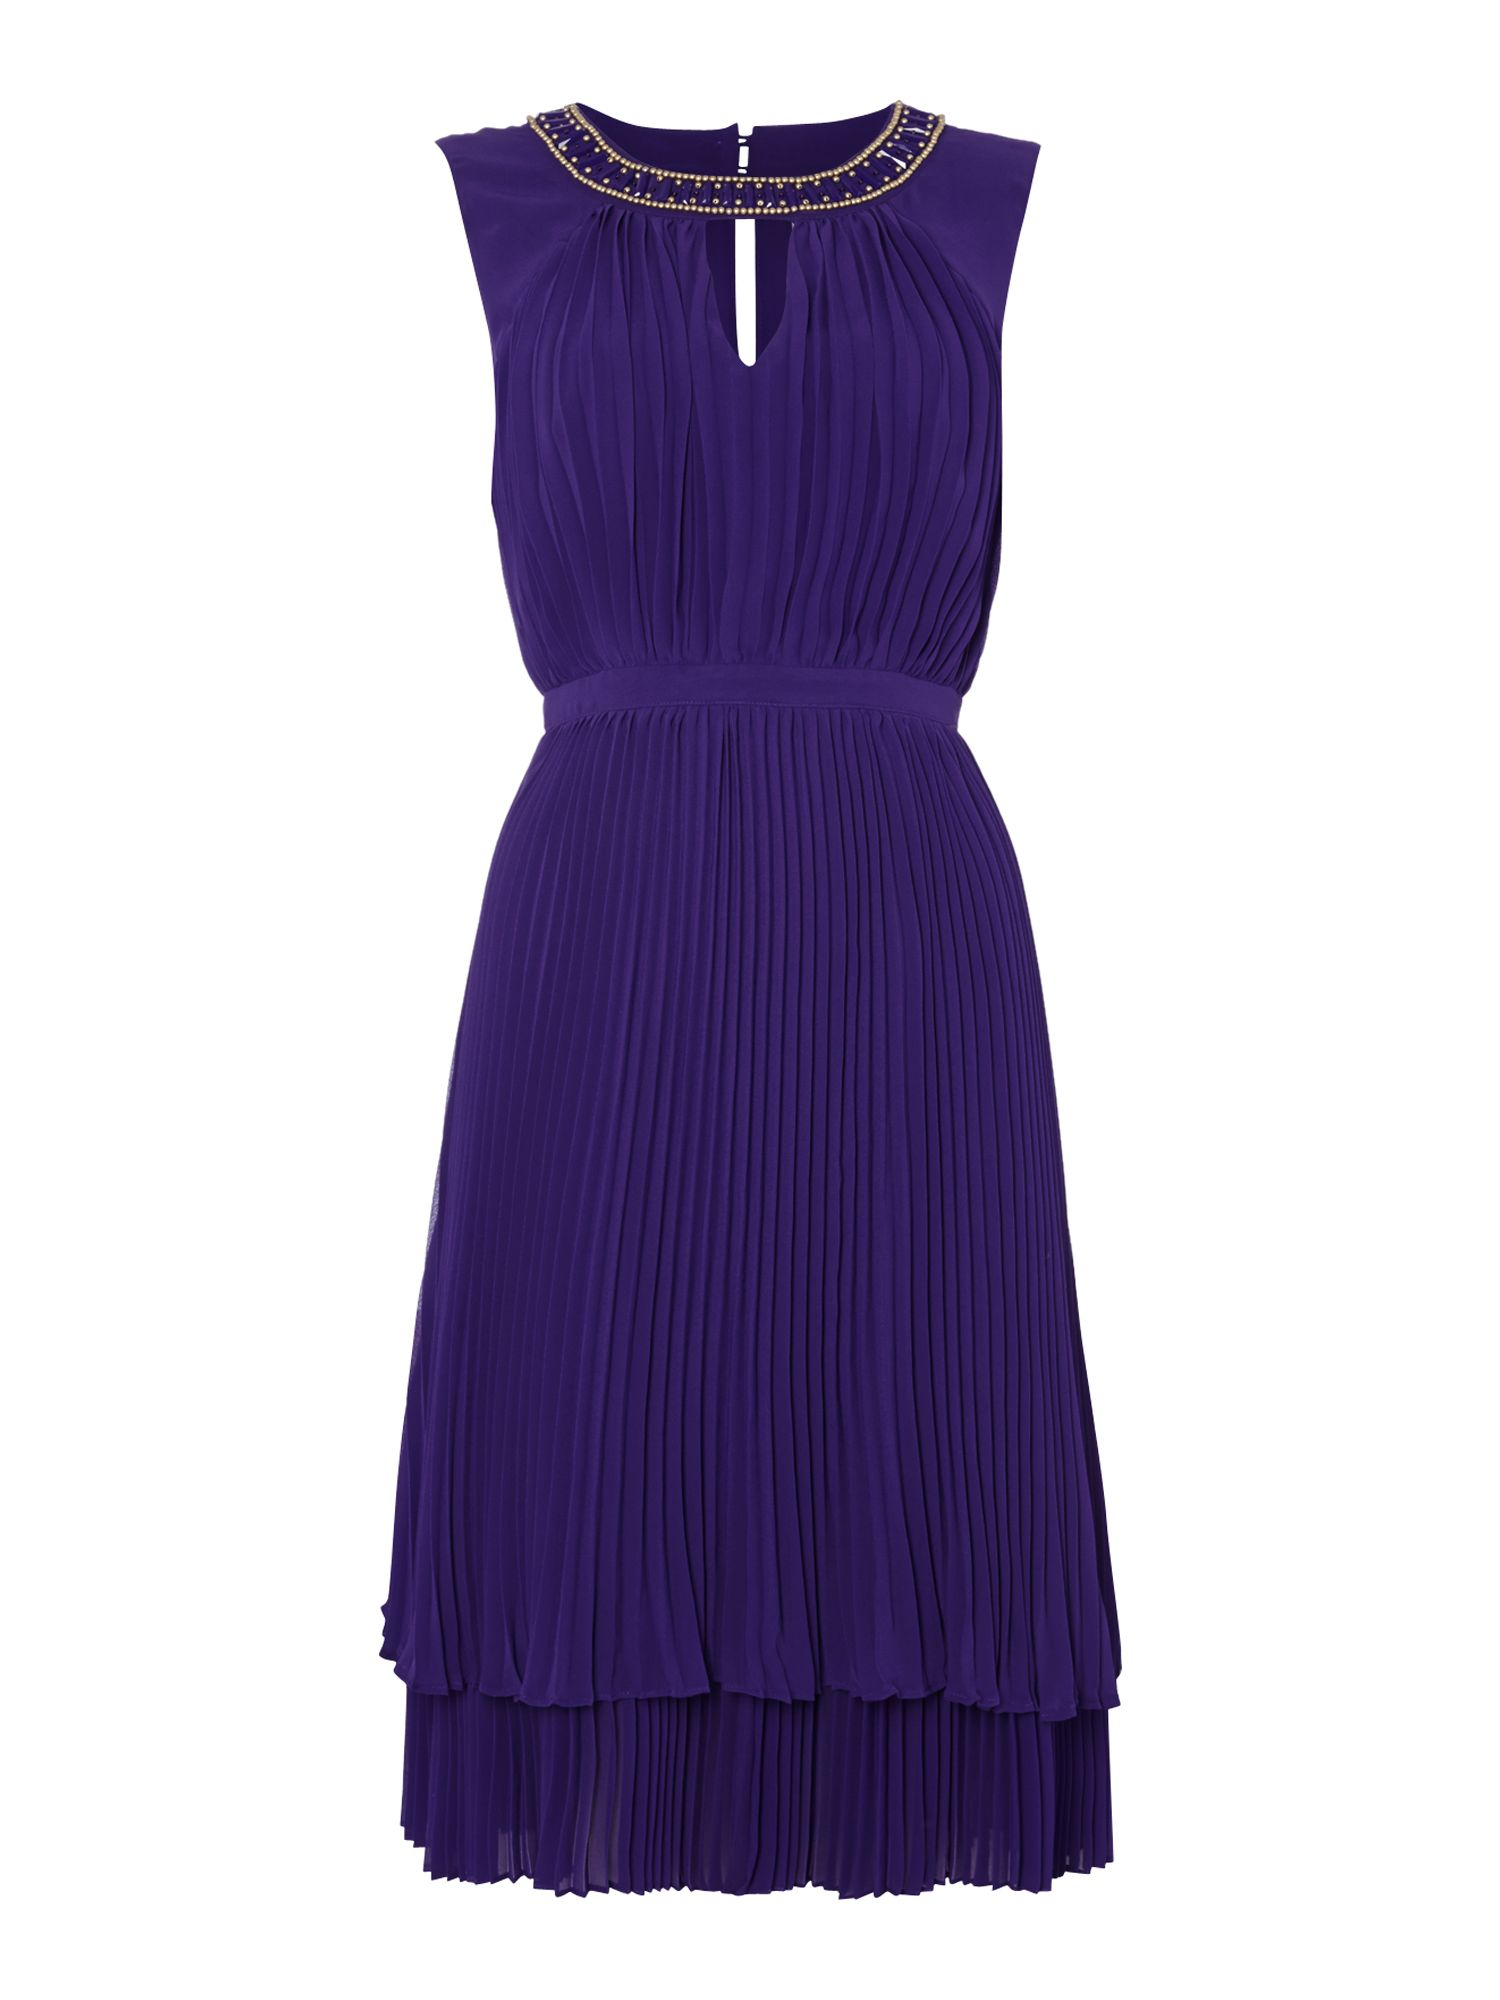 Pleated double layer chiffon dress